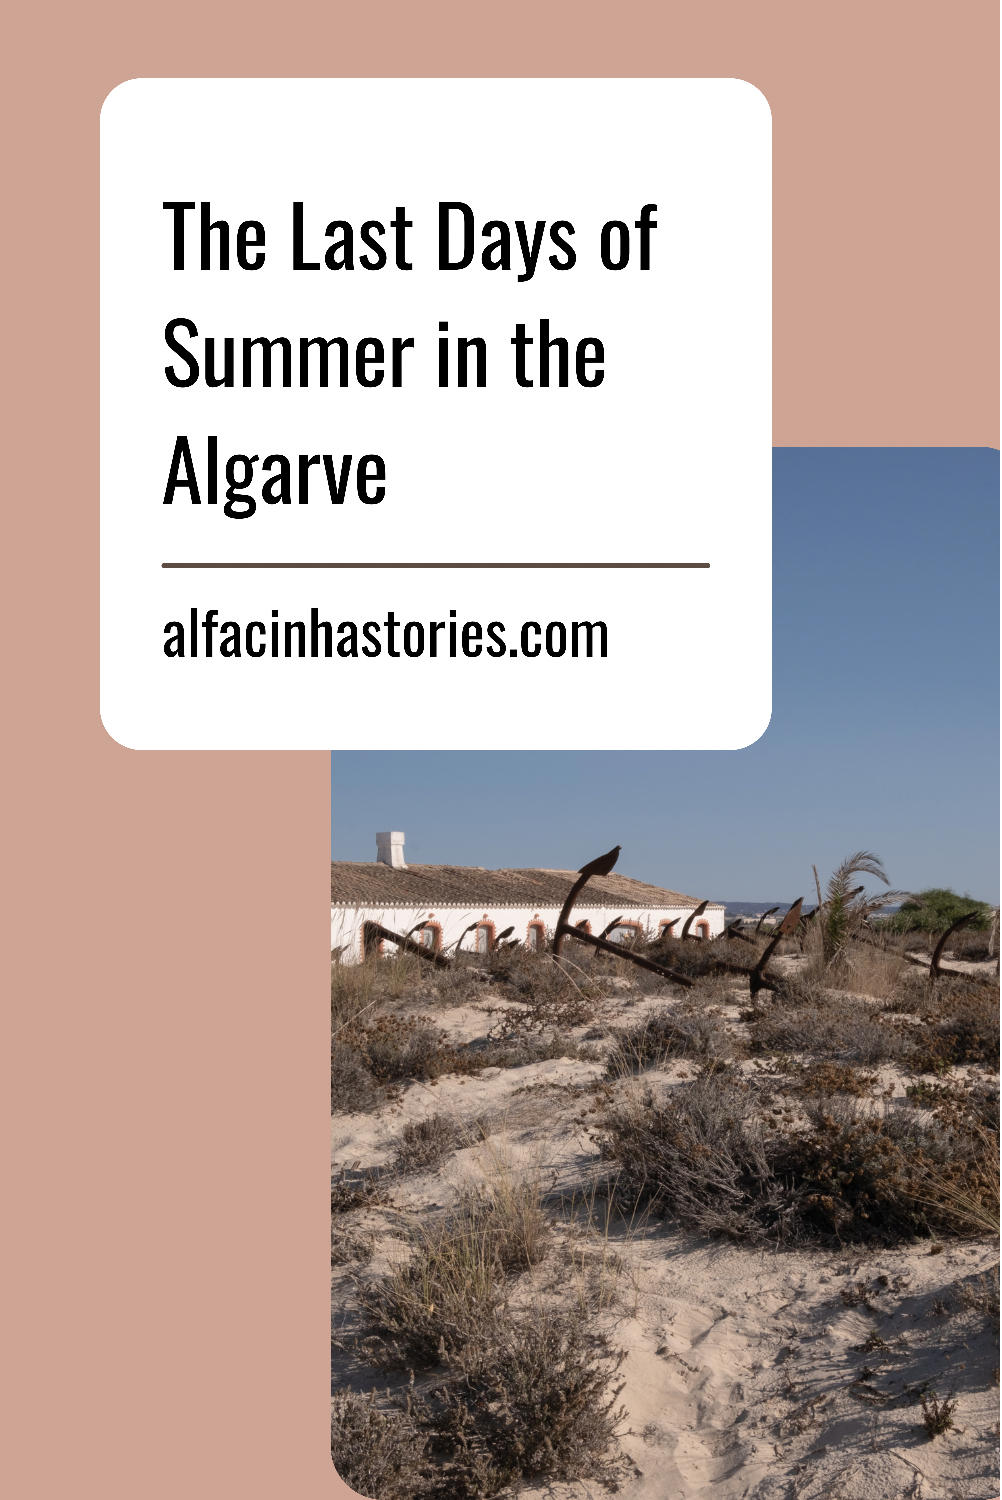 The Last Days of Summer in the Algarve